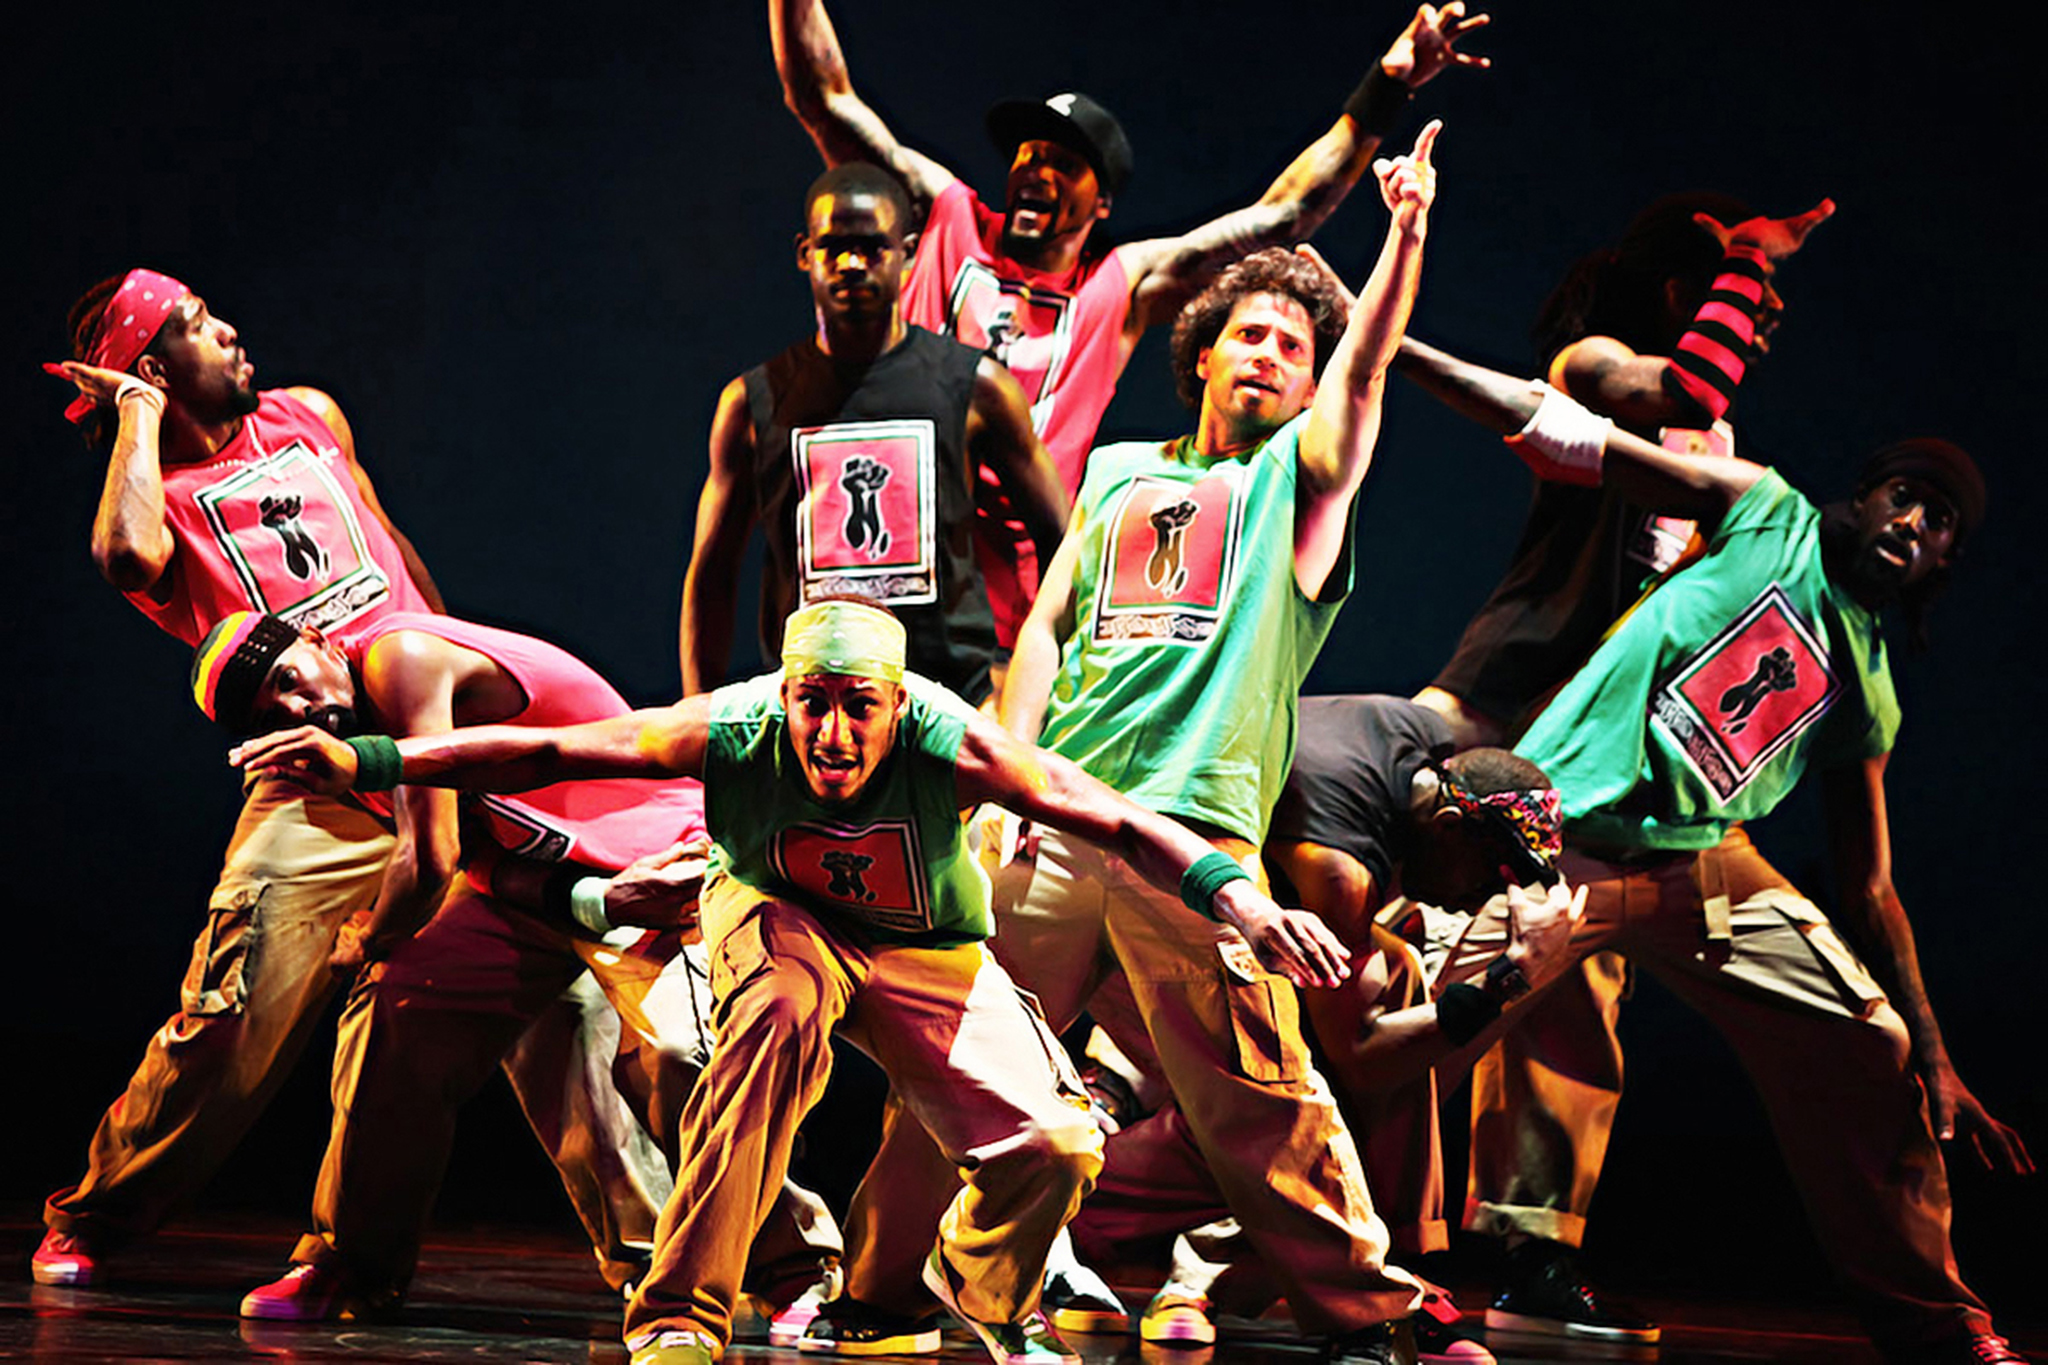 Family Day: Lincoln Center Block Party with Illstyle & Peace Productions